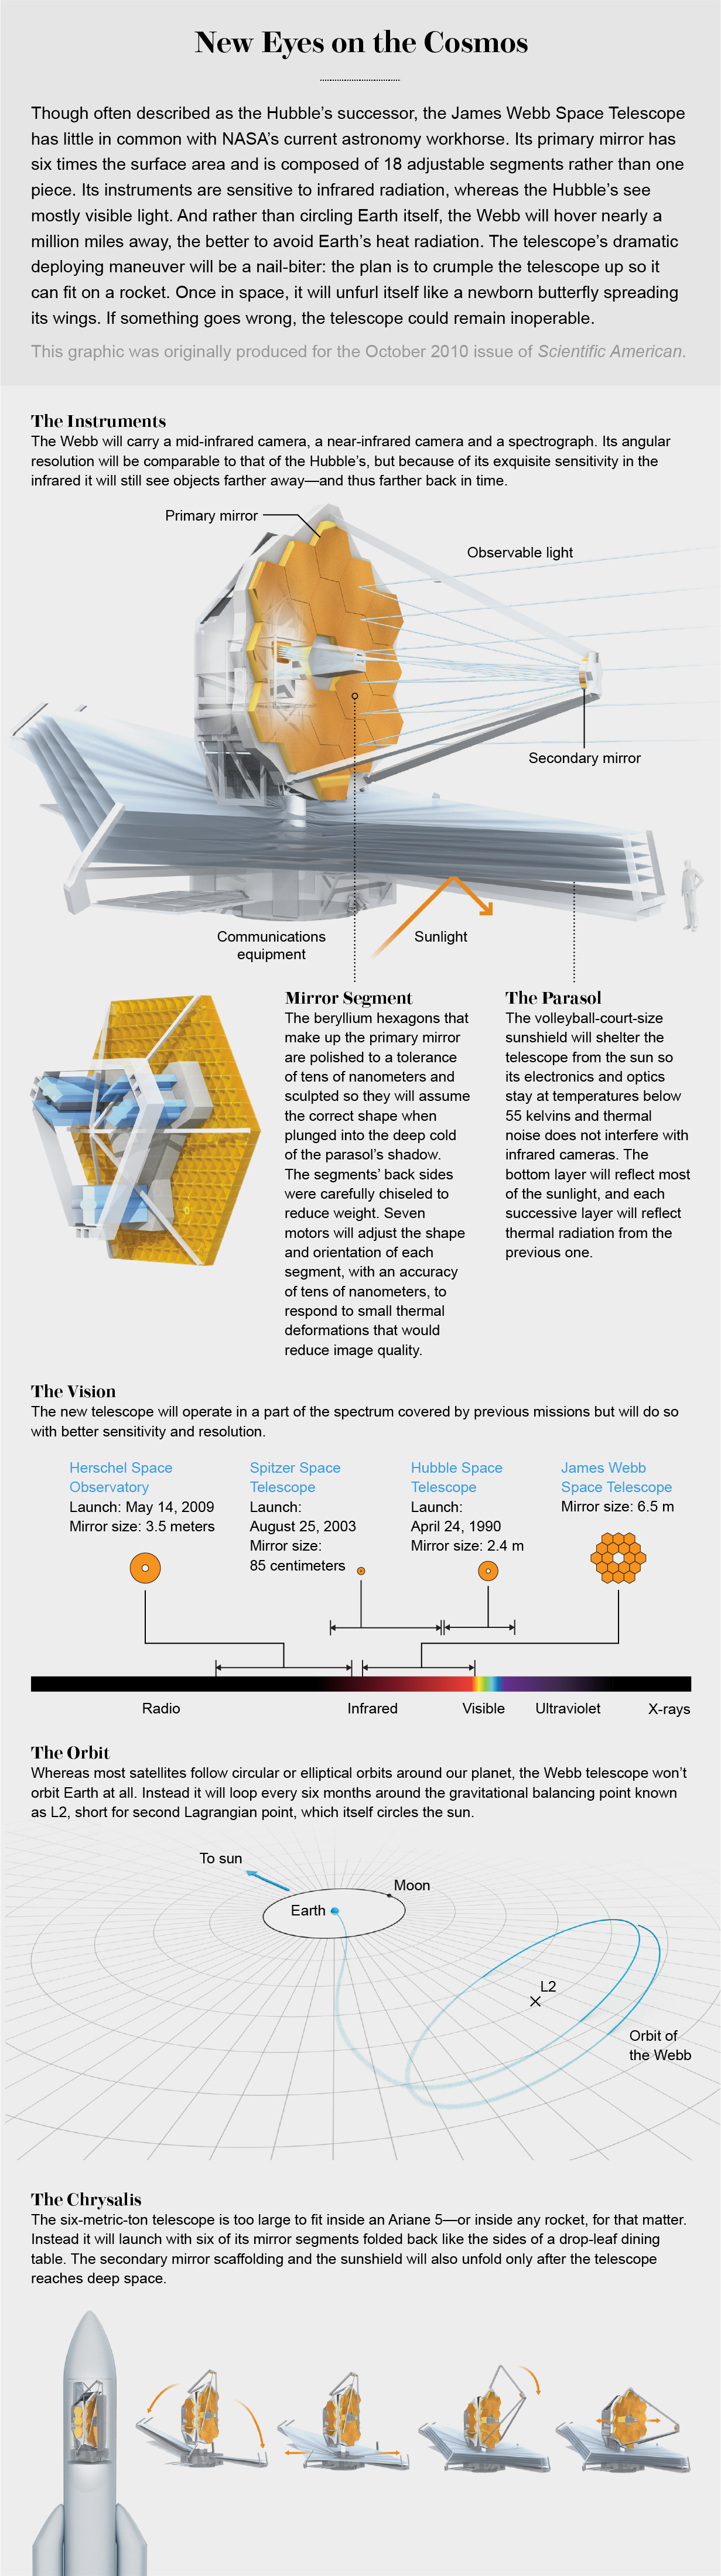 Graphic shows key elements of James Webb Space Telescope, such as its structure and orbit and how it will unfold in space.